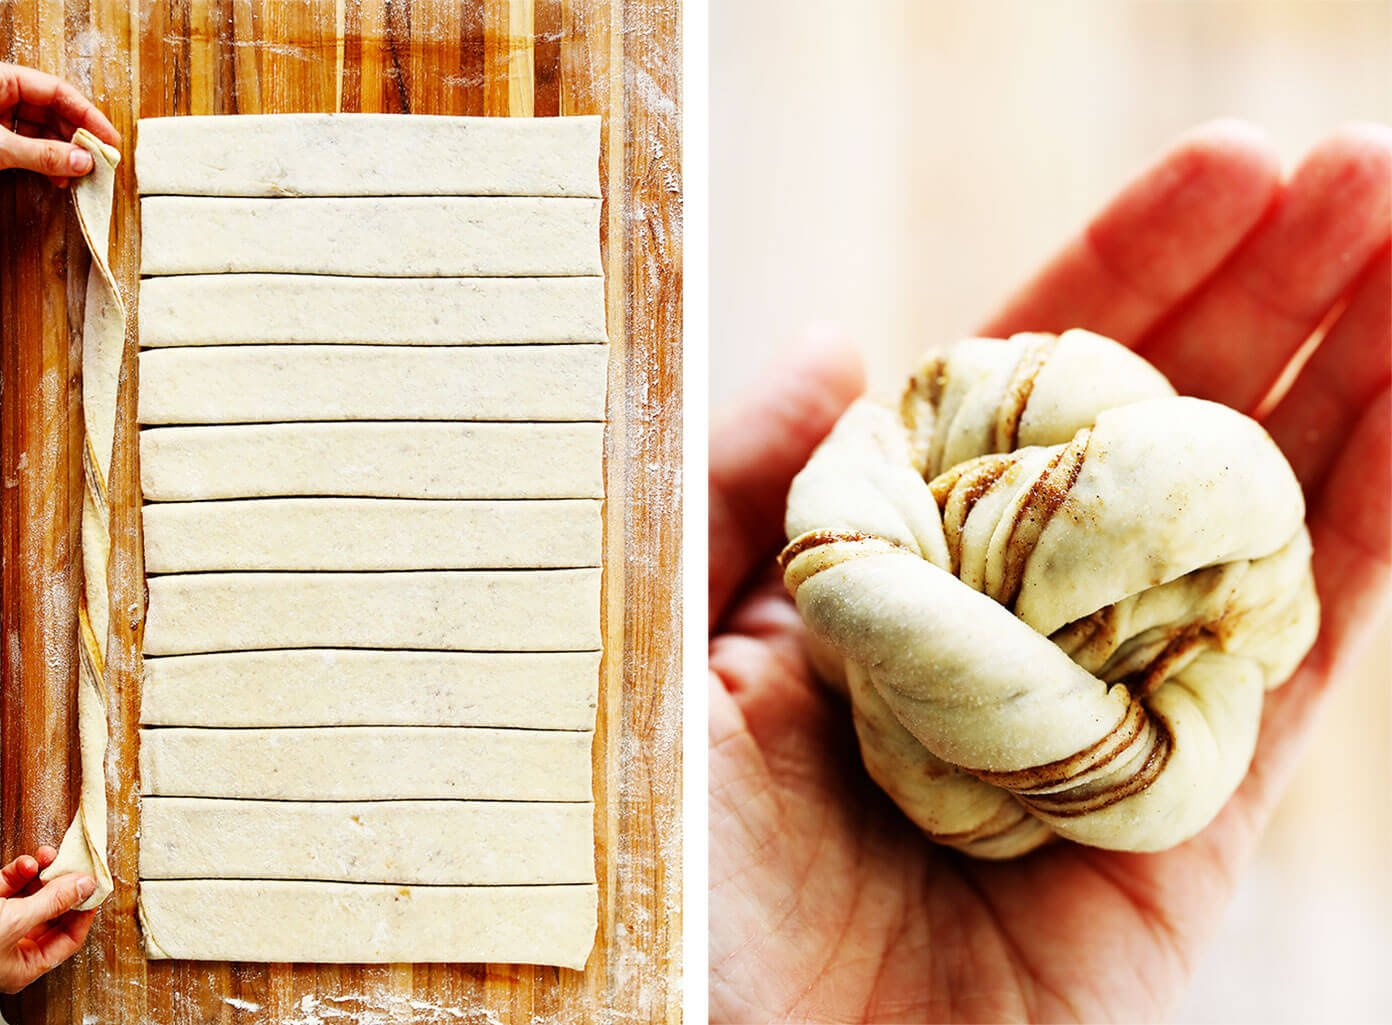 How To Twist and Roll Swedish Cinnamon Buns